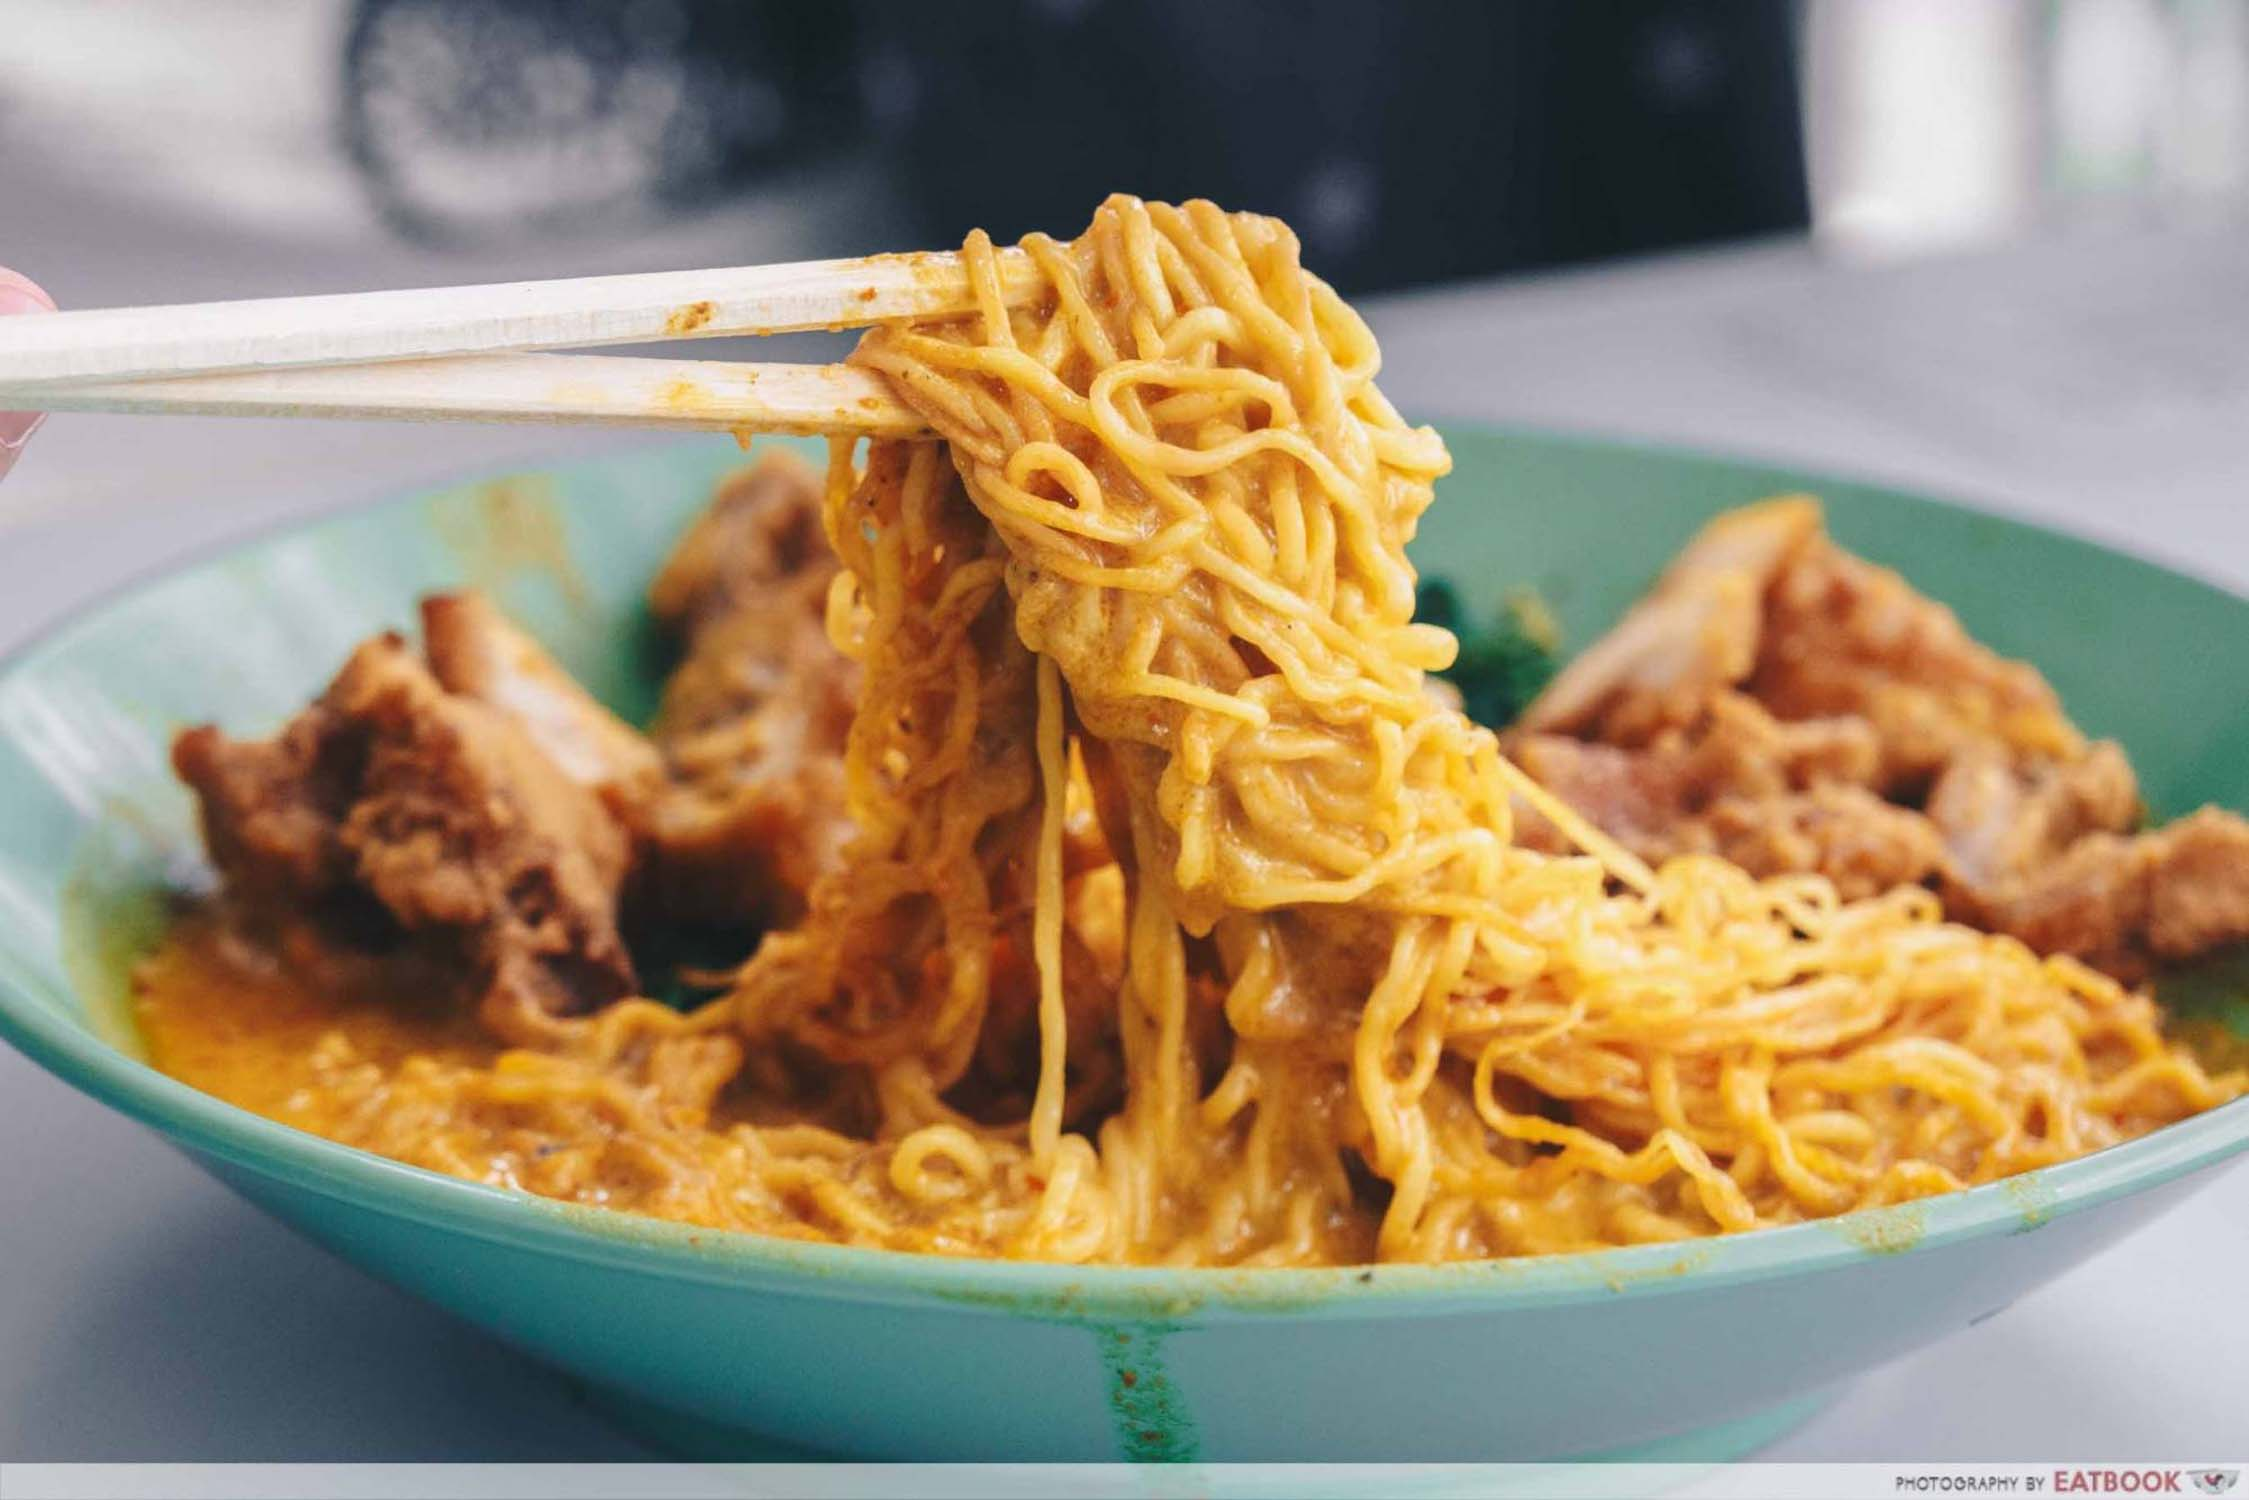 Cantonese Delights - Fried Chicken Cutlet Curry Noodles Noodle Pull